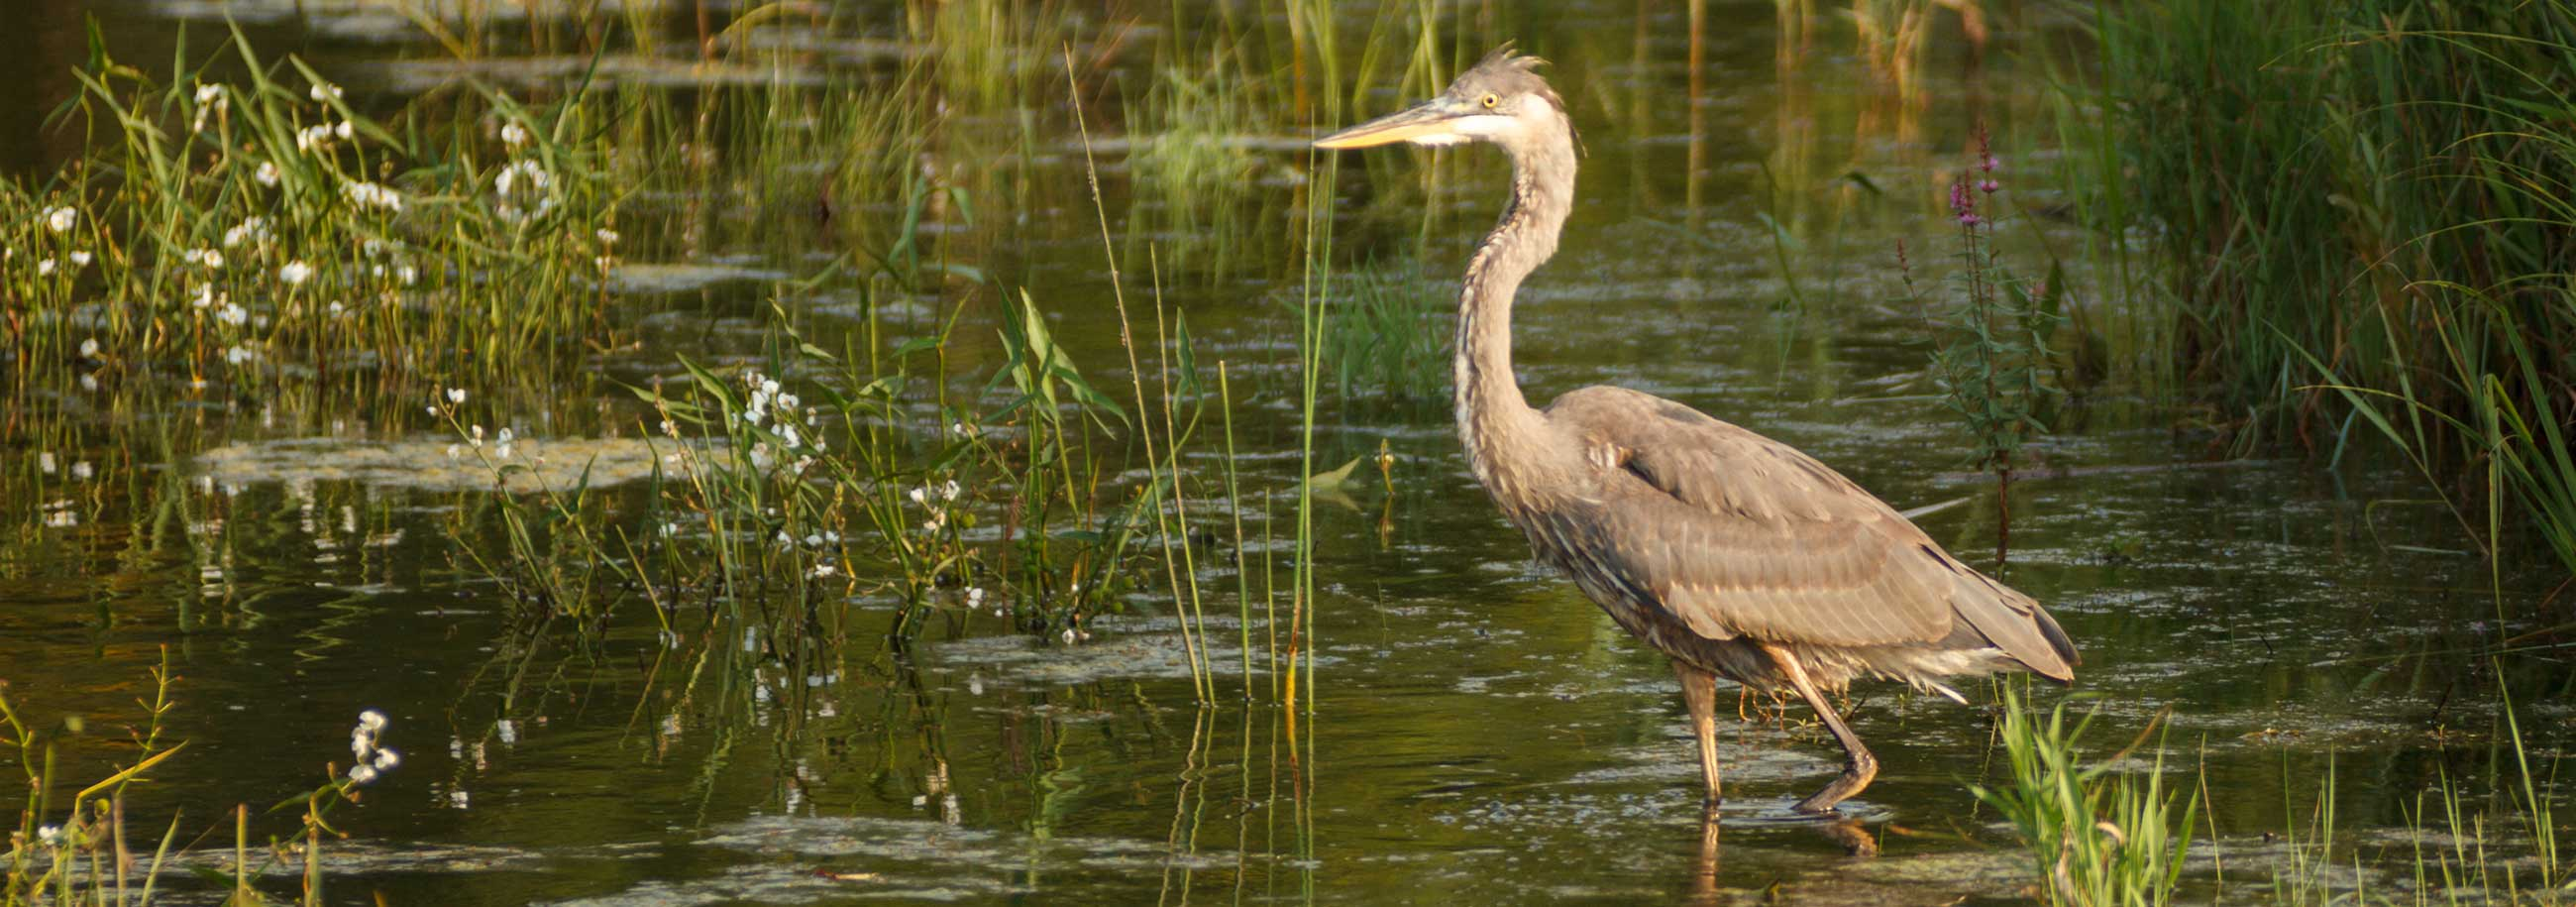 Bird in Marsh from Fox River Trustee Council in Green Bay, WI